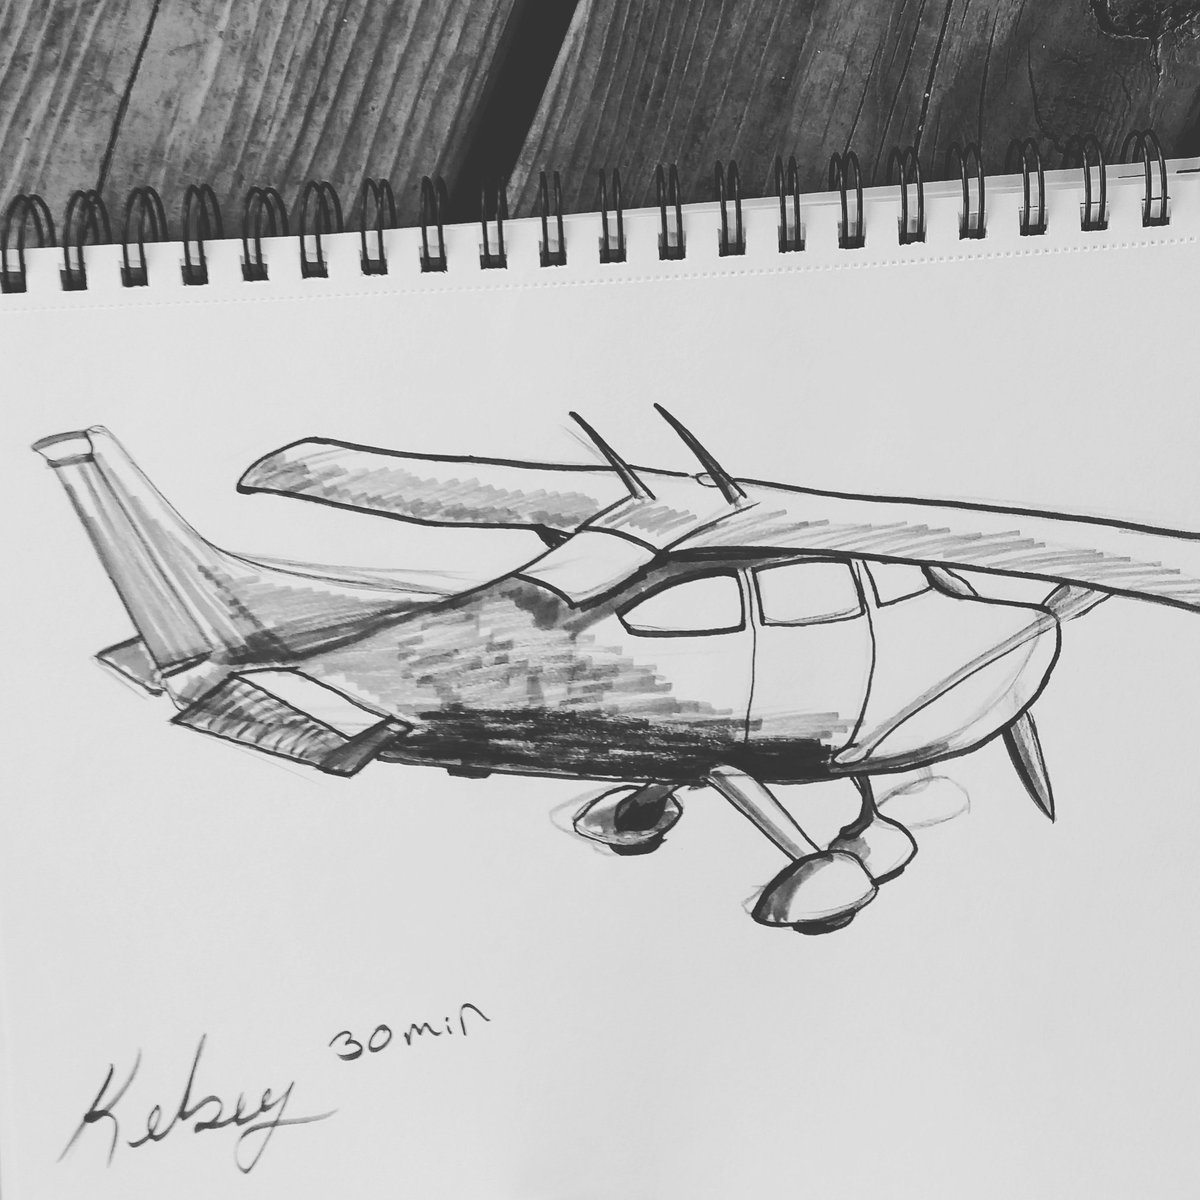 Drawing planes today, this was my nice one and it was cold outside. #myart #lifedrawing #pencildrawing #cessna #FridayFeeling #planes<br>http://pic.twitter.com/OSOCDPGD4a